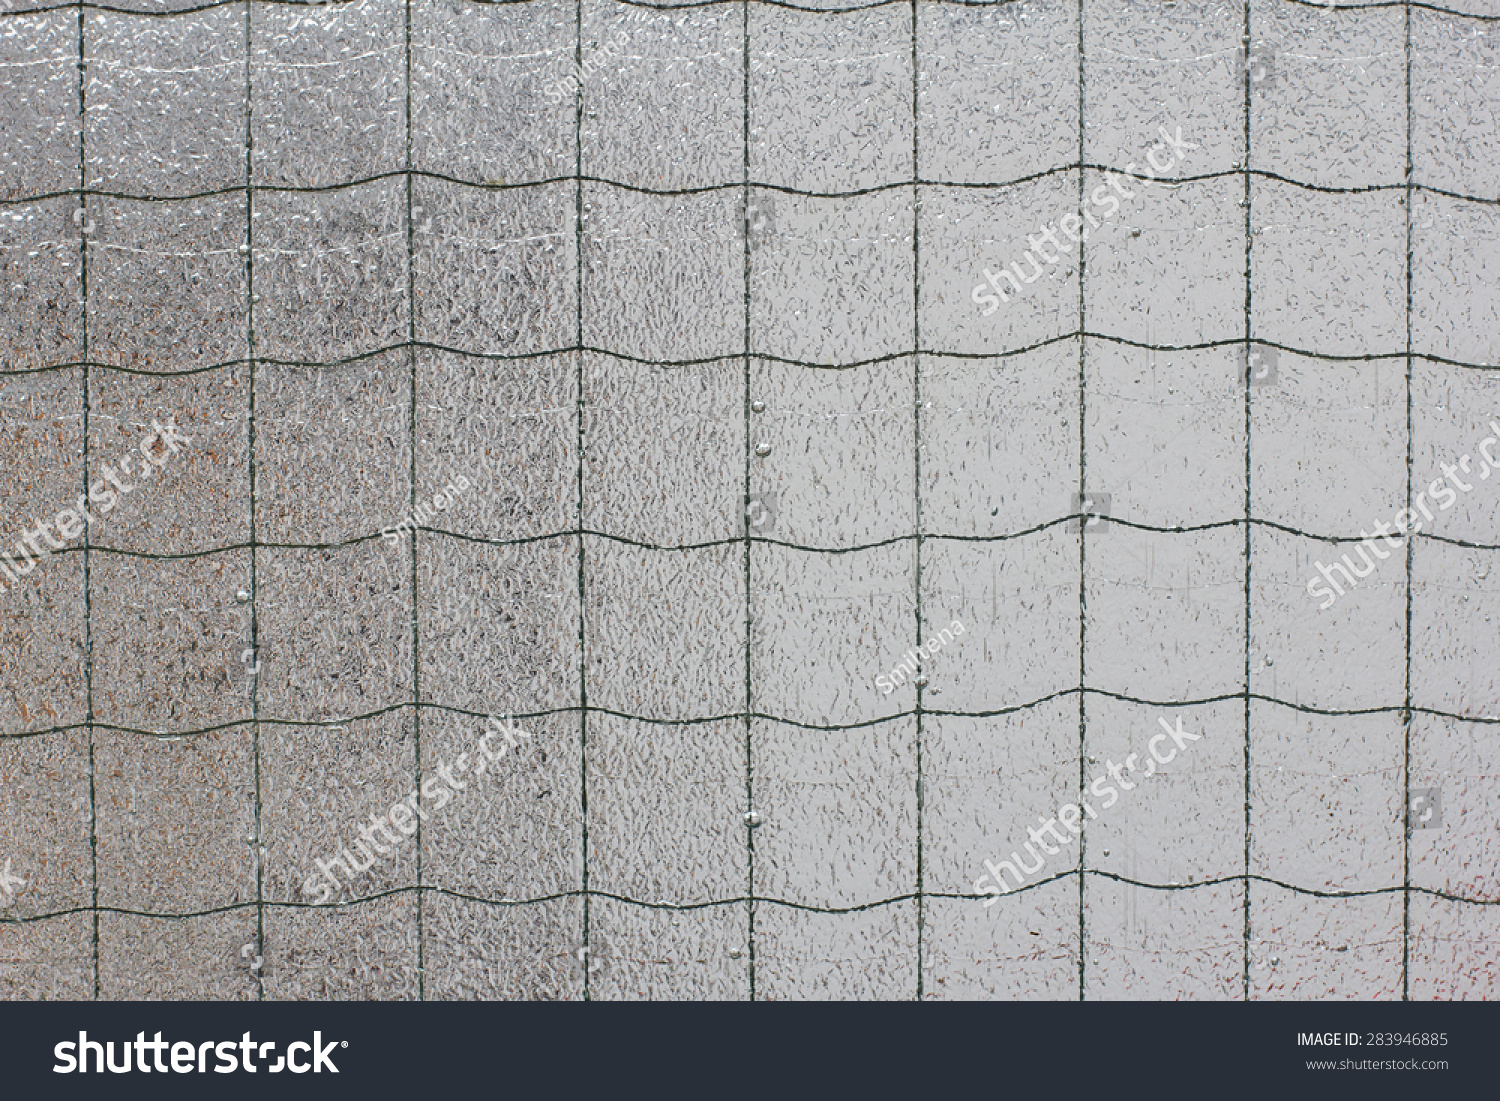 Reinforced Glass Texture Stock Photo & Image (Royalty-Free ...